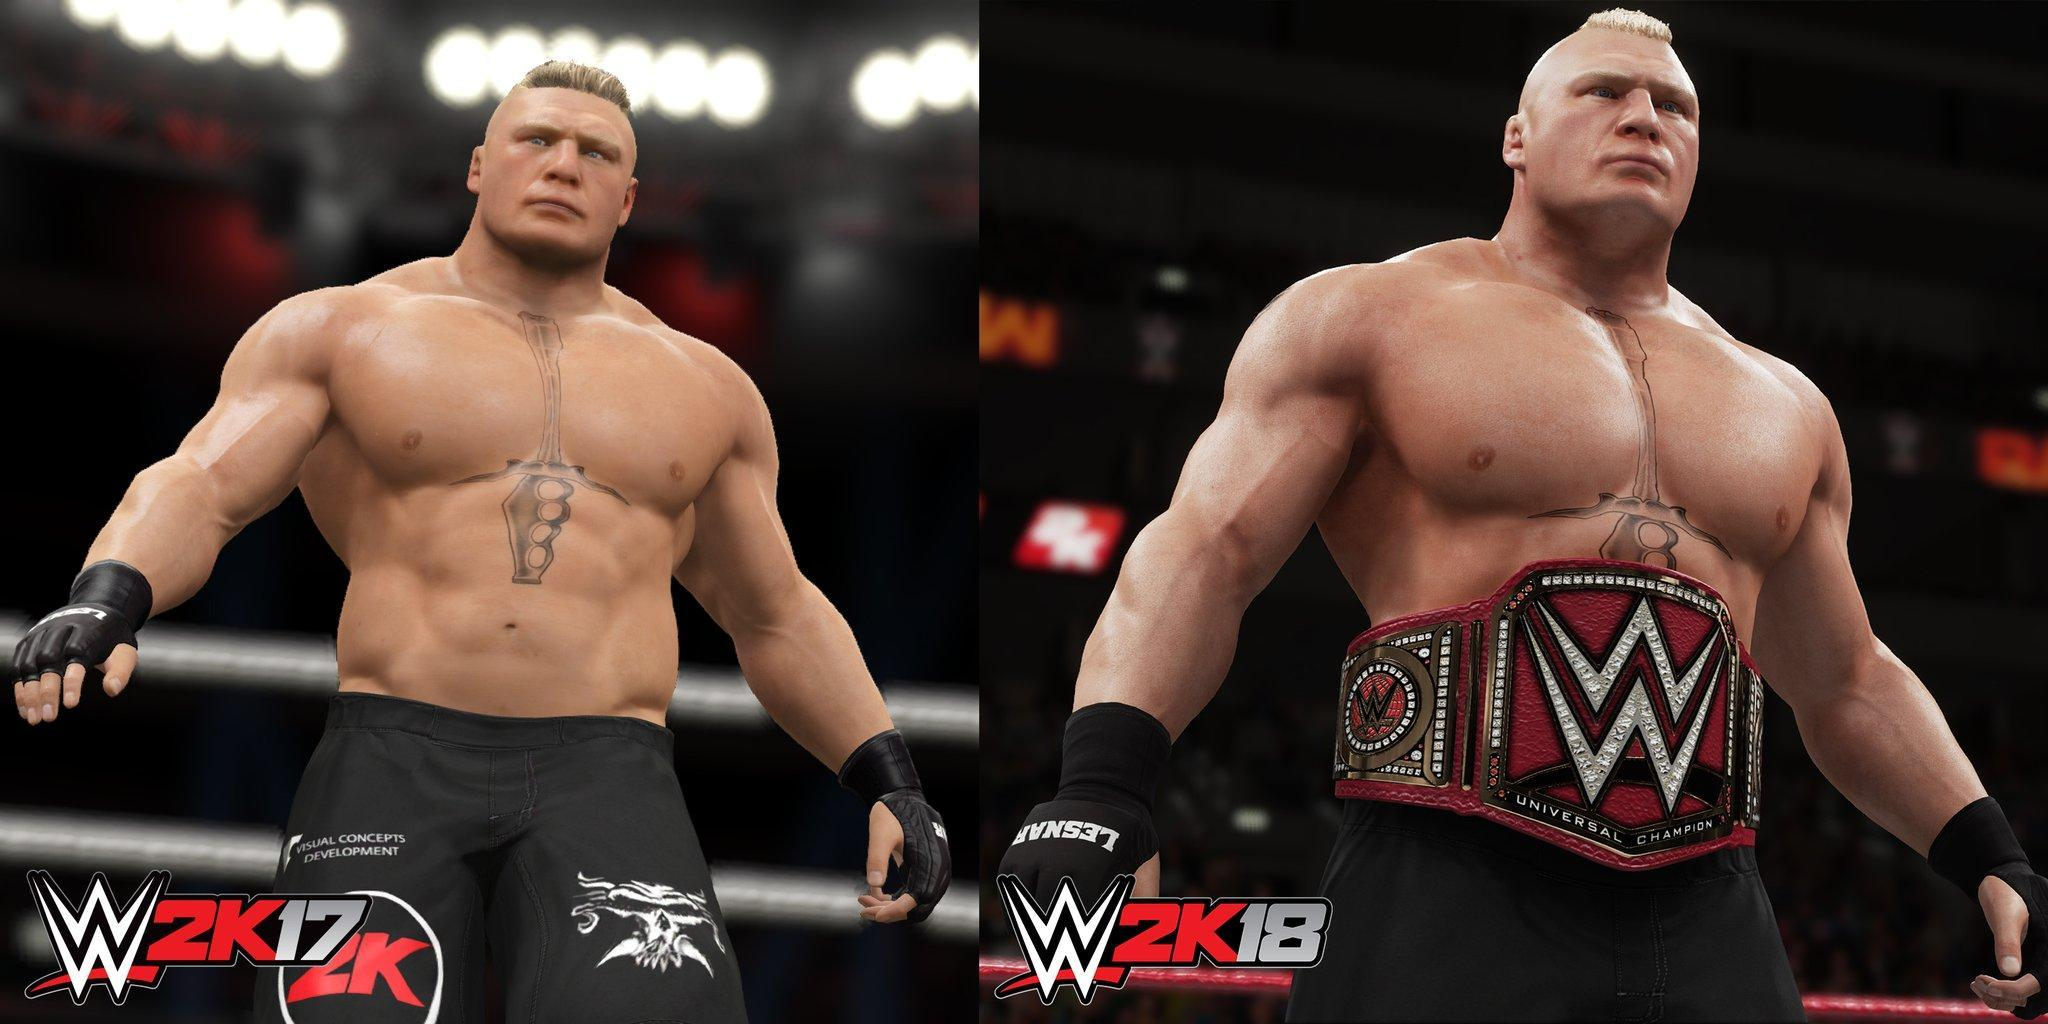 WWE2K18 vs 2K17 Brock Lesnar Graphics Comparison